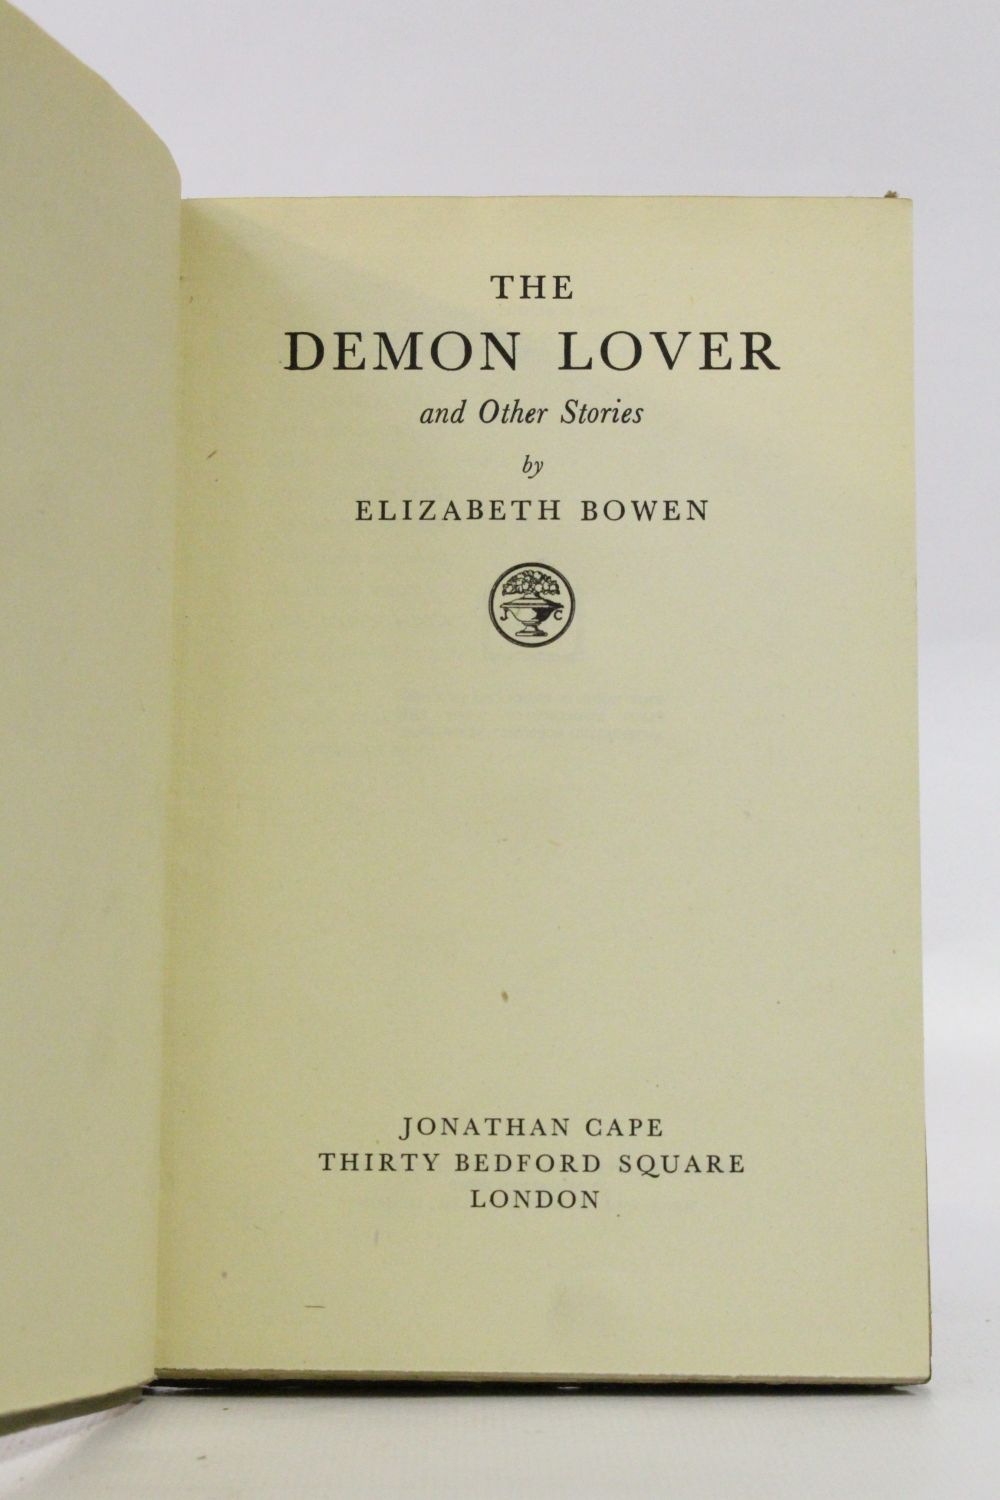 elizabeth bowen the demon lover ジェンダー研究 第11号 2008 55 fears of the demon lover: female paranoia in the demon lover stories by elizabeth bowen and shirley jackson.